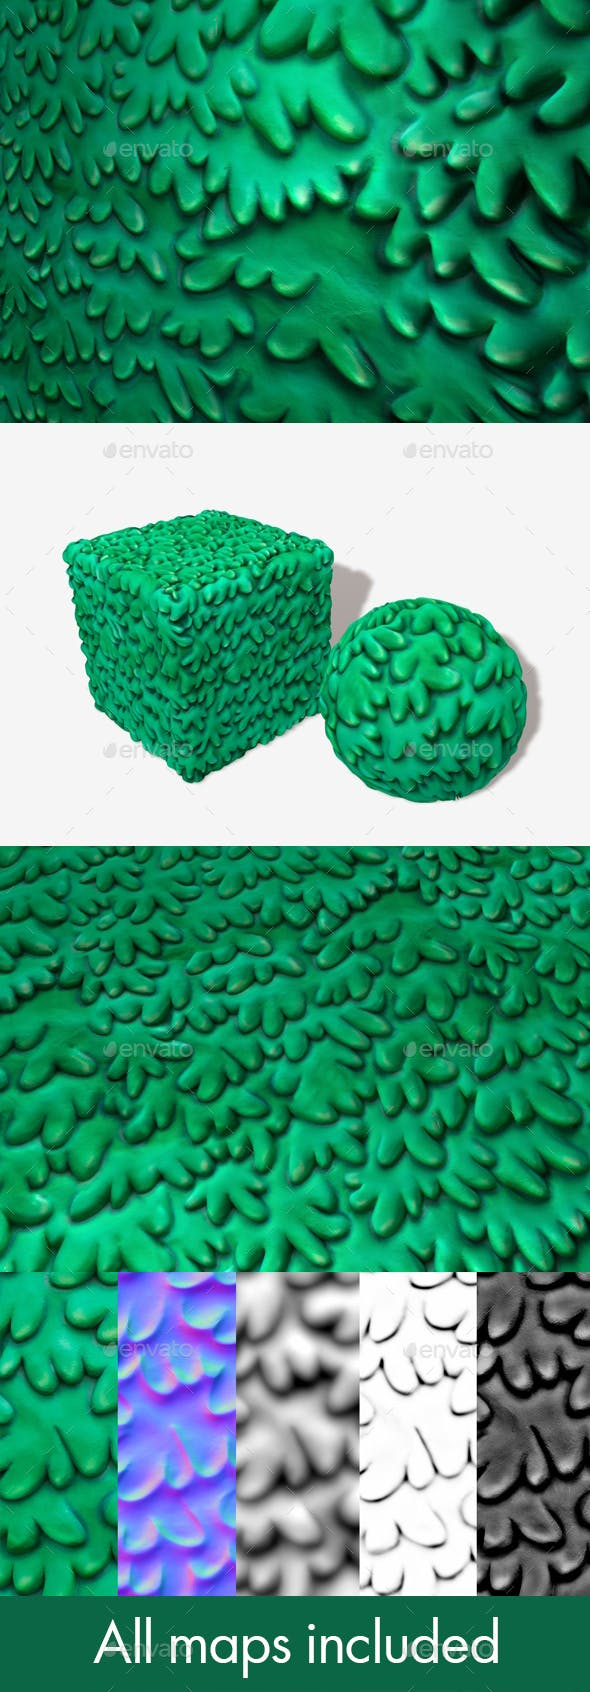 Toon Shrubbery Seamless Texture - 3DOcean Item for Sale